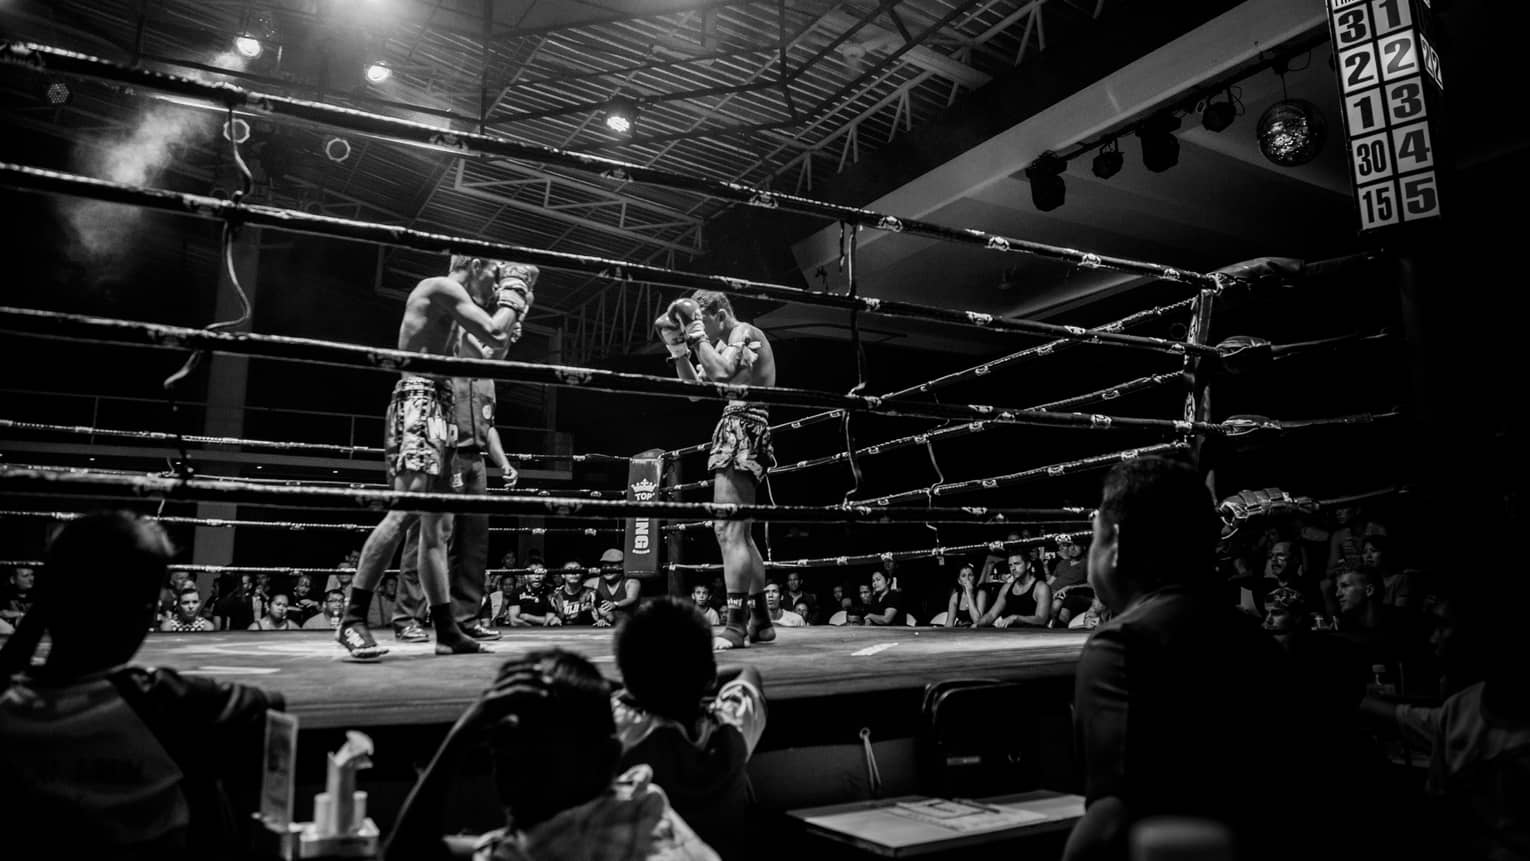 Black-and-white photo of two Muay Thai boxers in ring surrounded by spectators